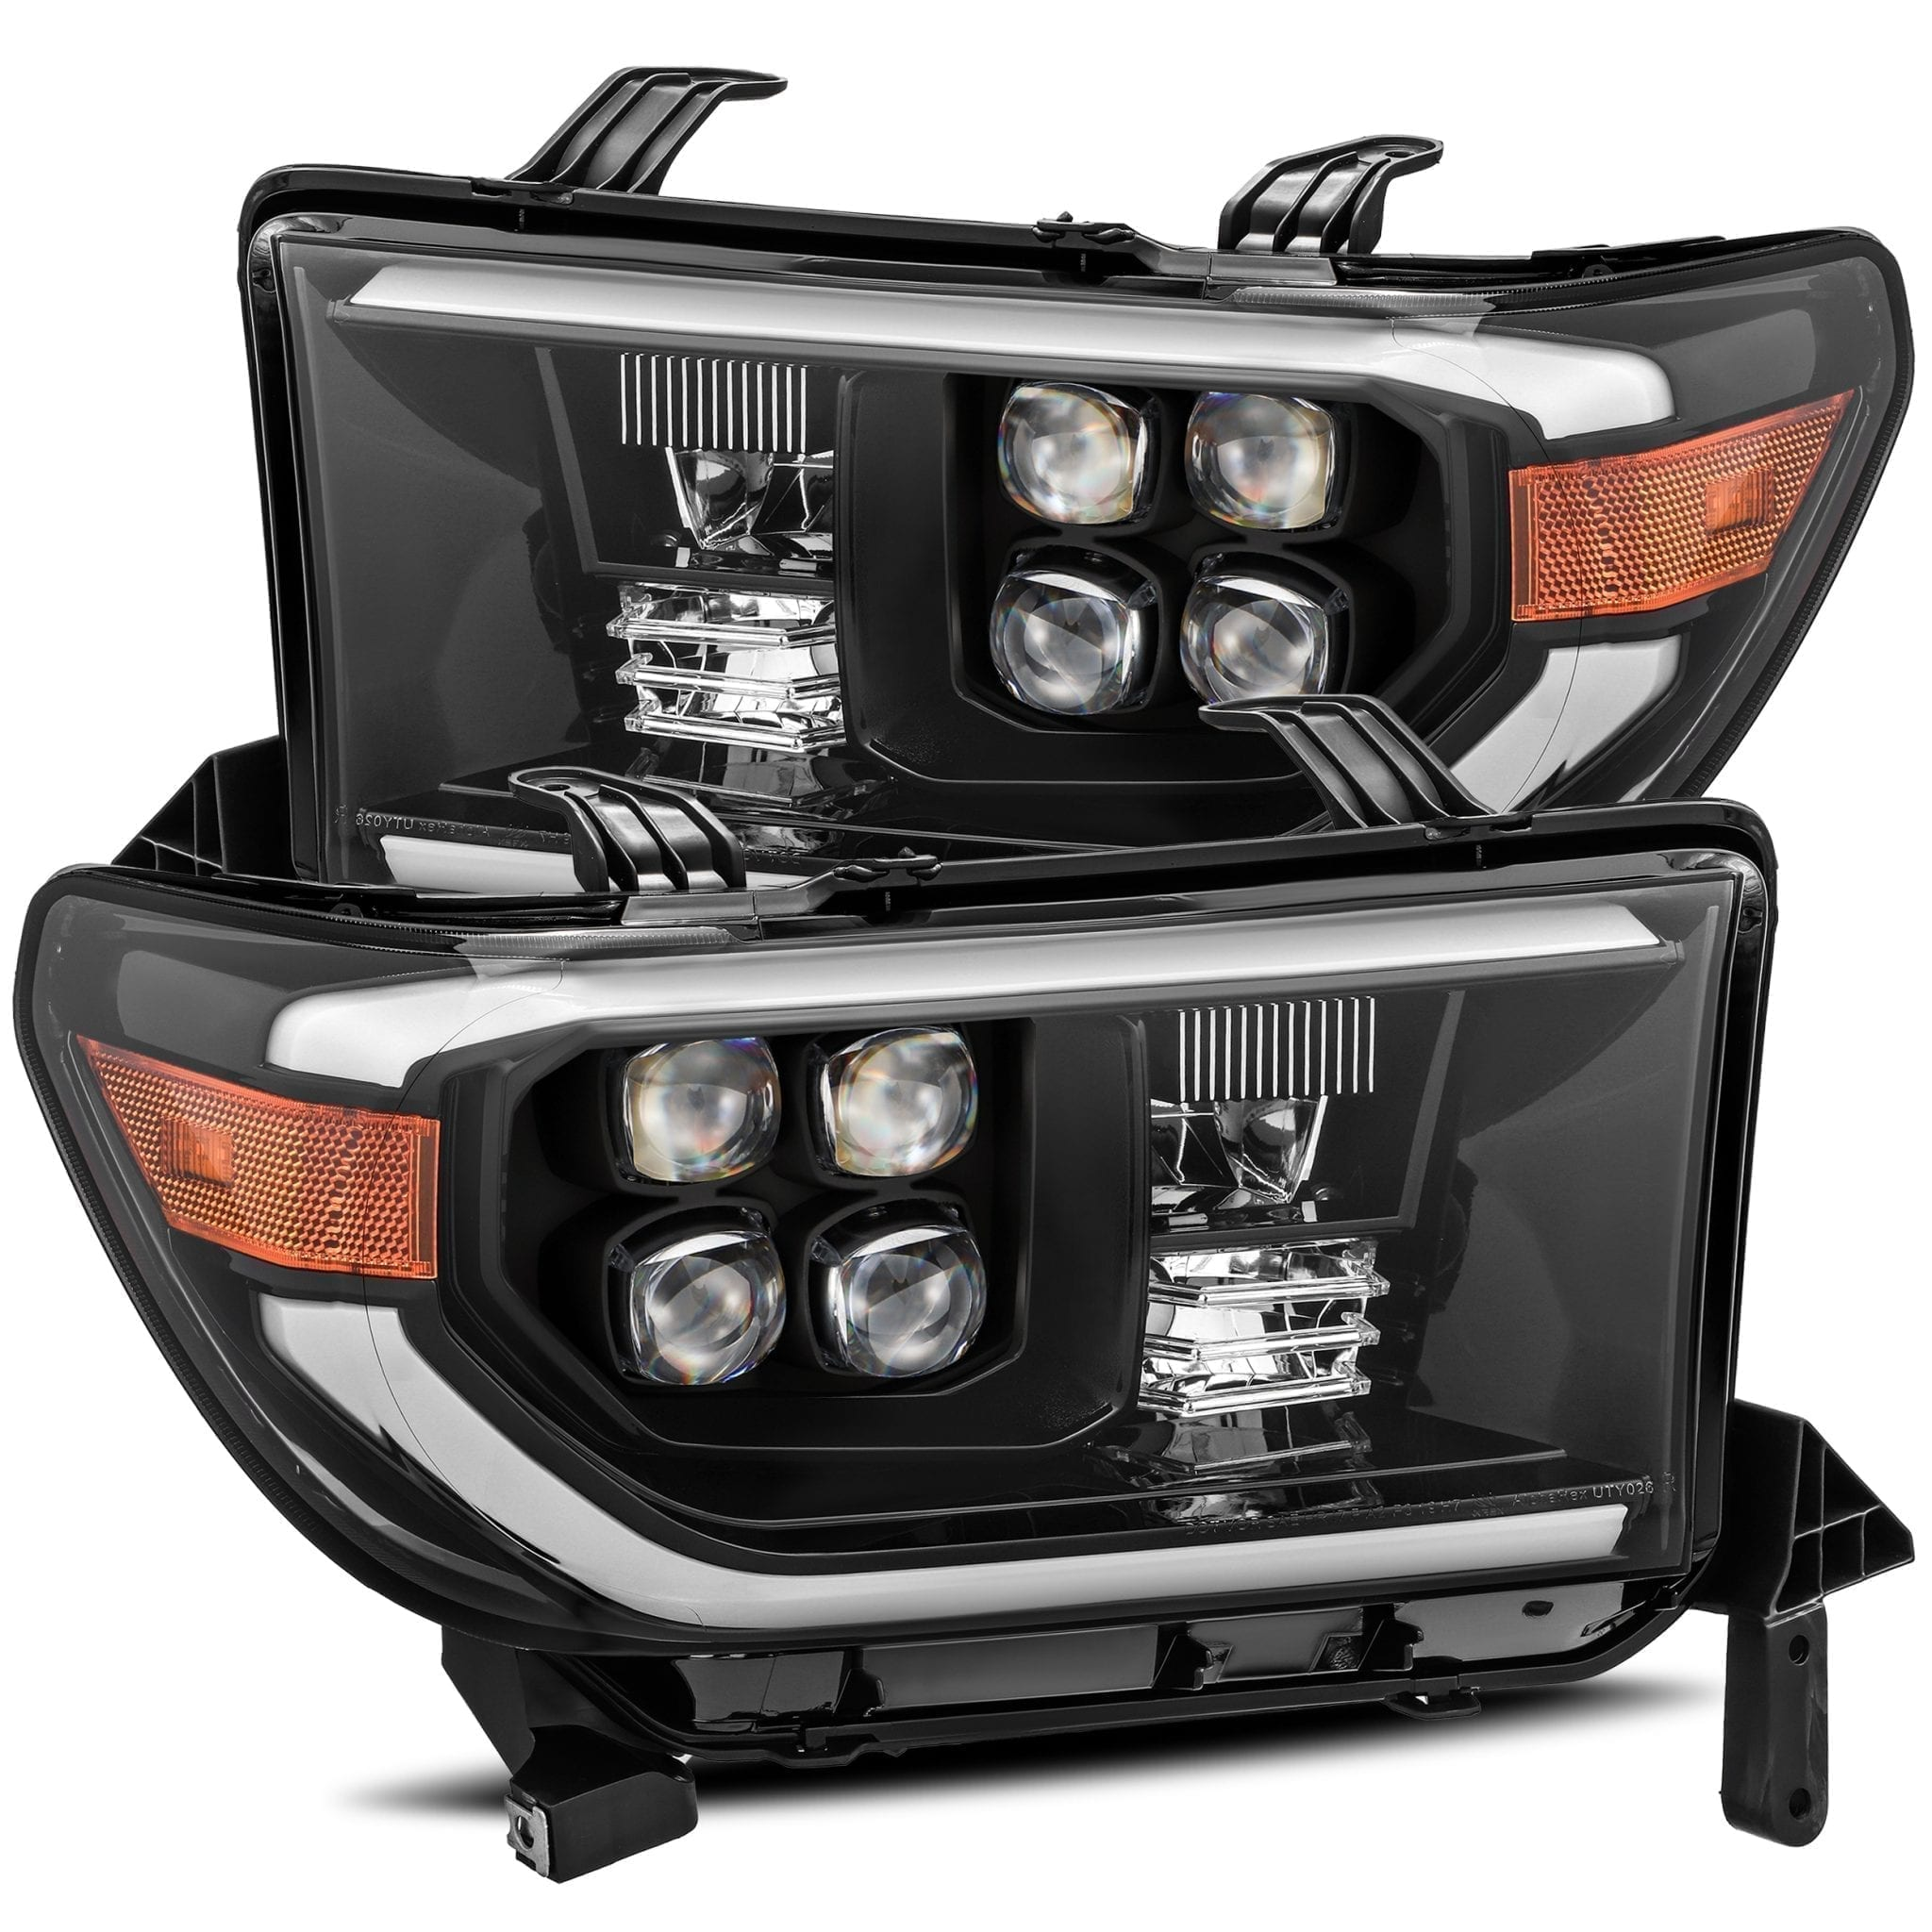 2007 2008 2009 2010 2011 2012 2013 Toyota Tundra Sequoia NOVA-Series Full LED Projector Headlights Midnight Black